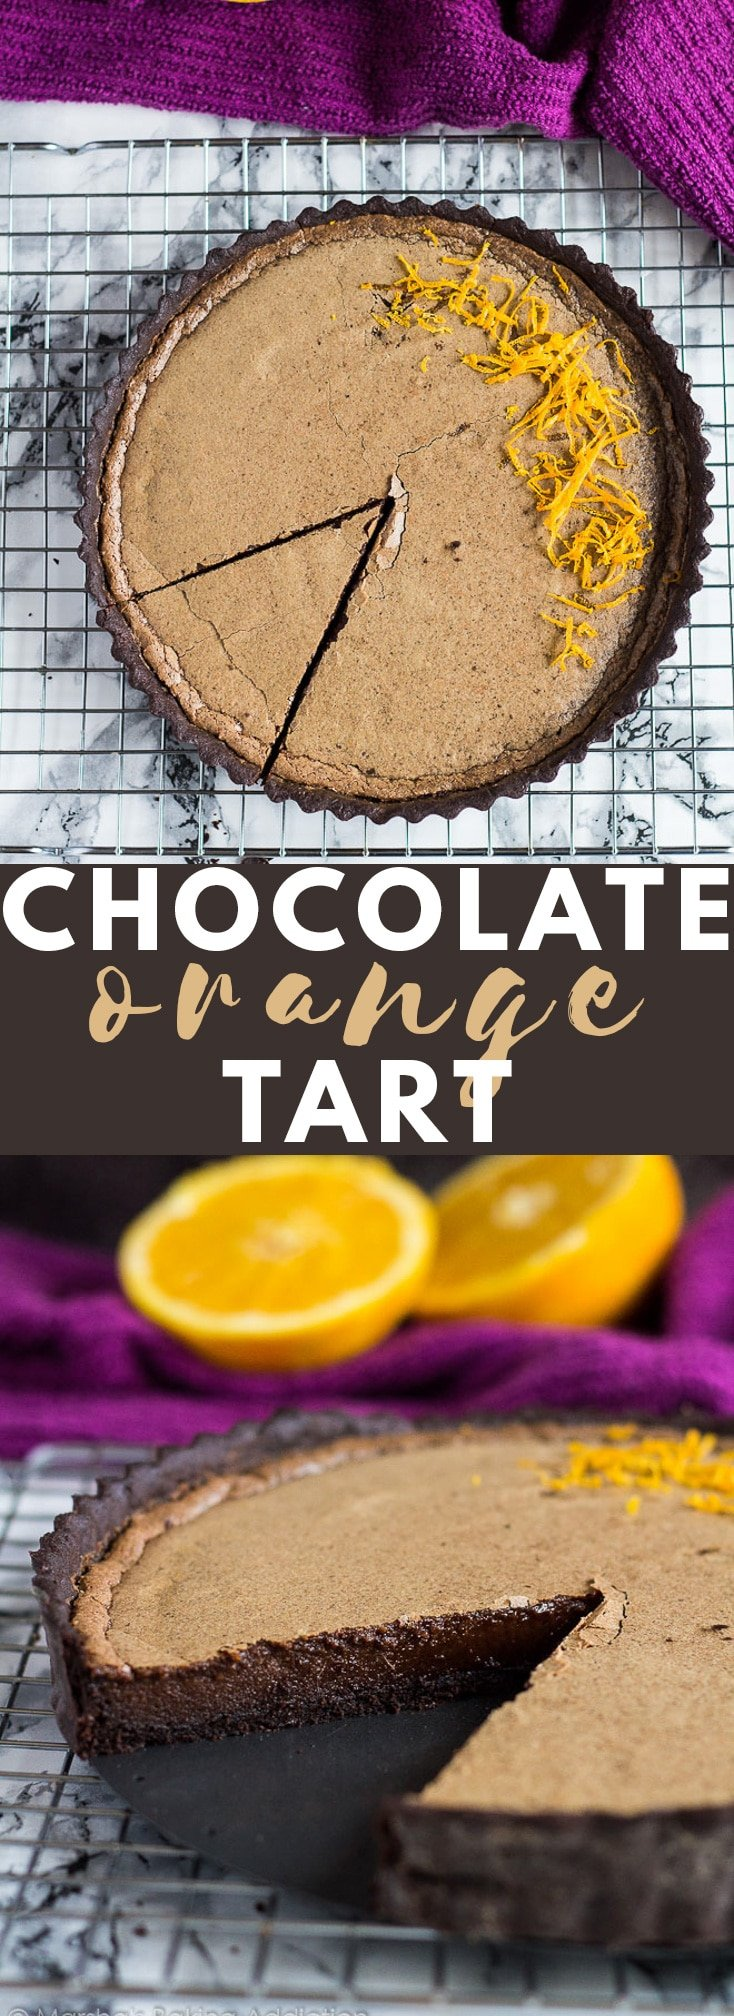 Dark Chocolate Orange Tart - A buttery, flaky chocolate orange-infused crust filled with a luxuriously creamy chocolate orange pudding! #chocolate #orange #tartrecipes #chocolaterecipes